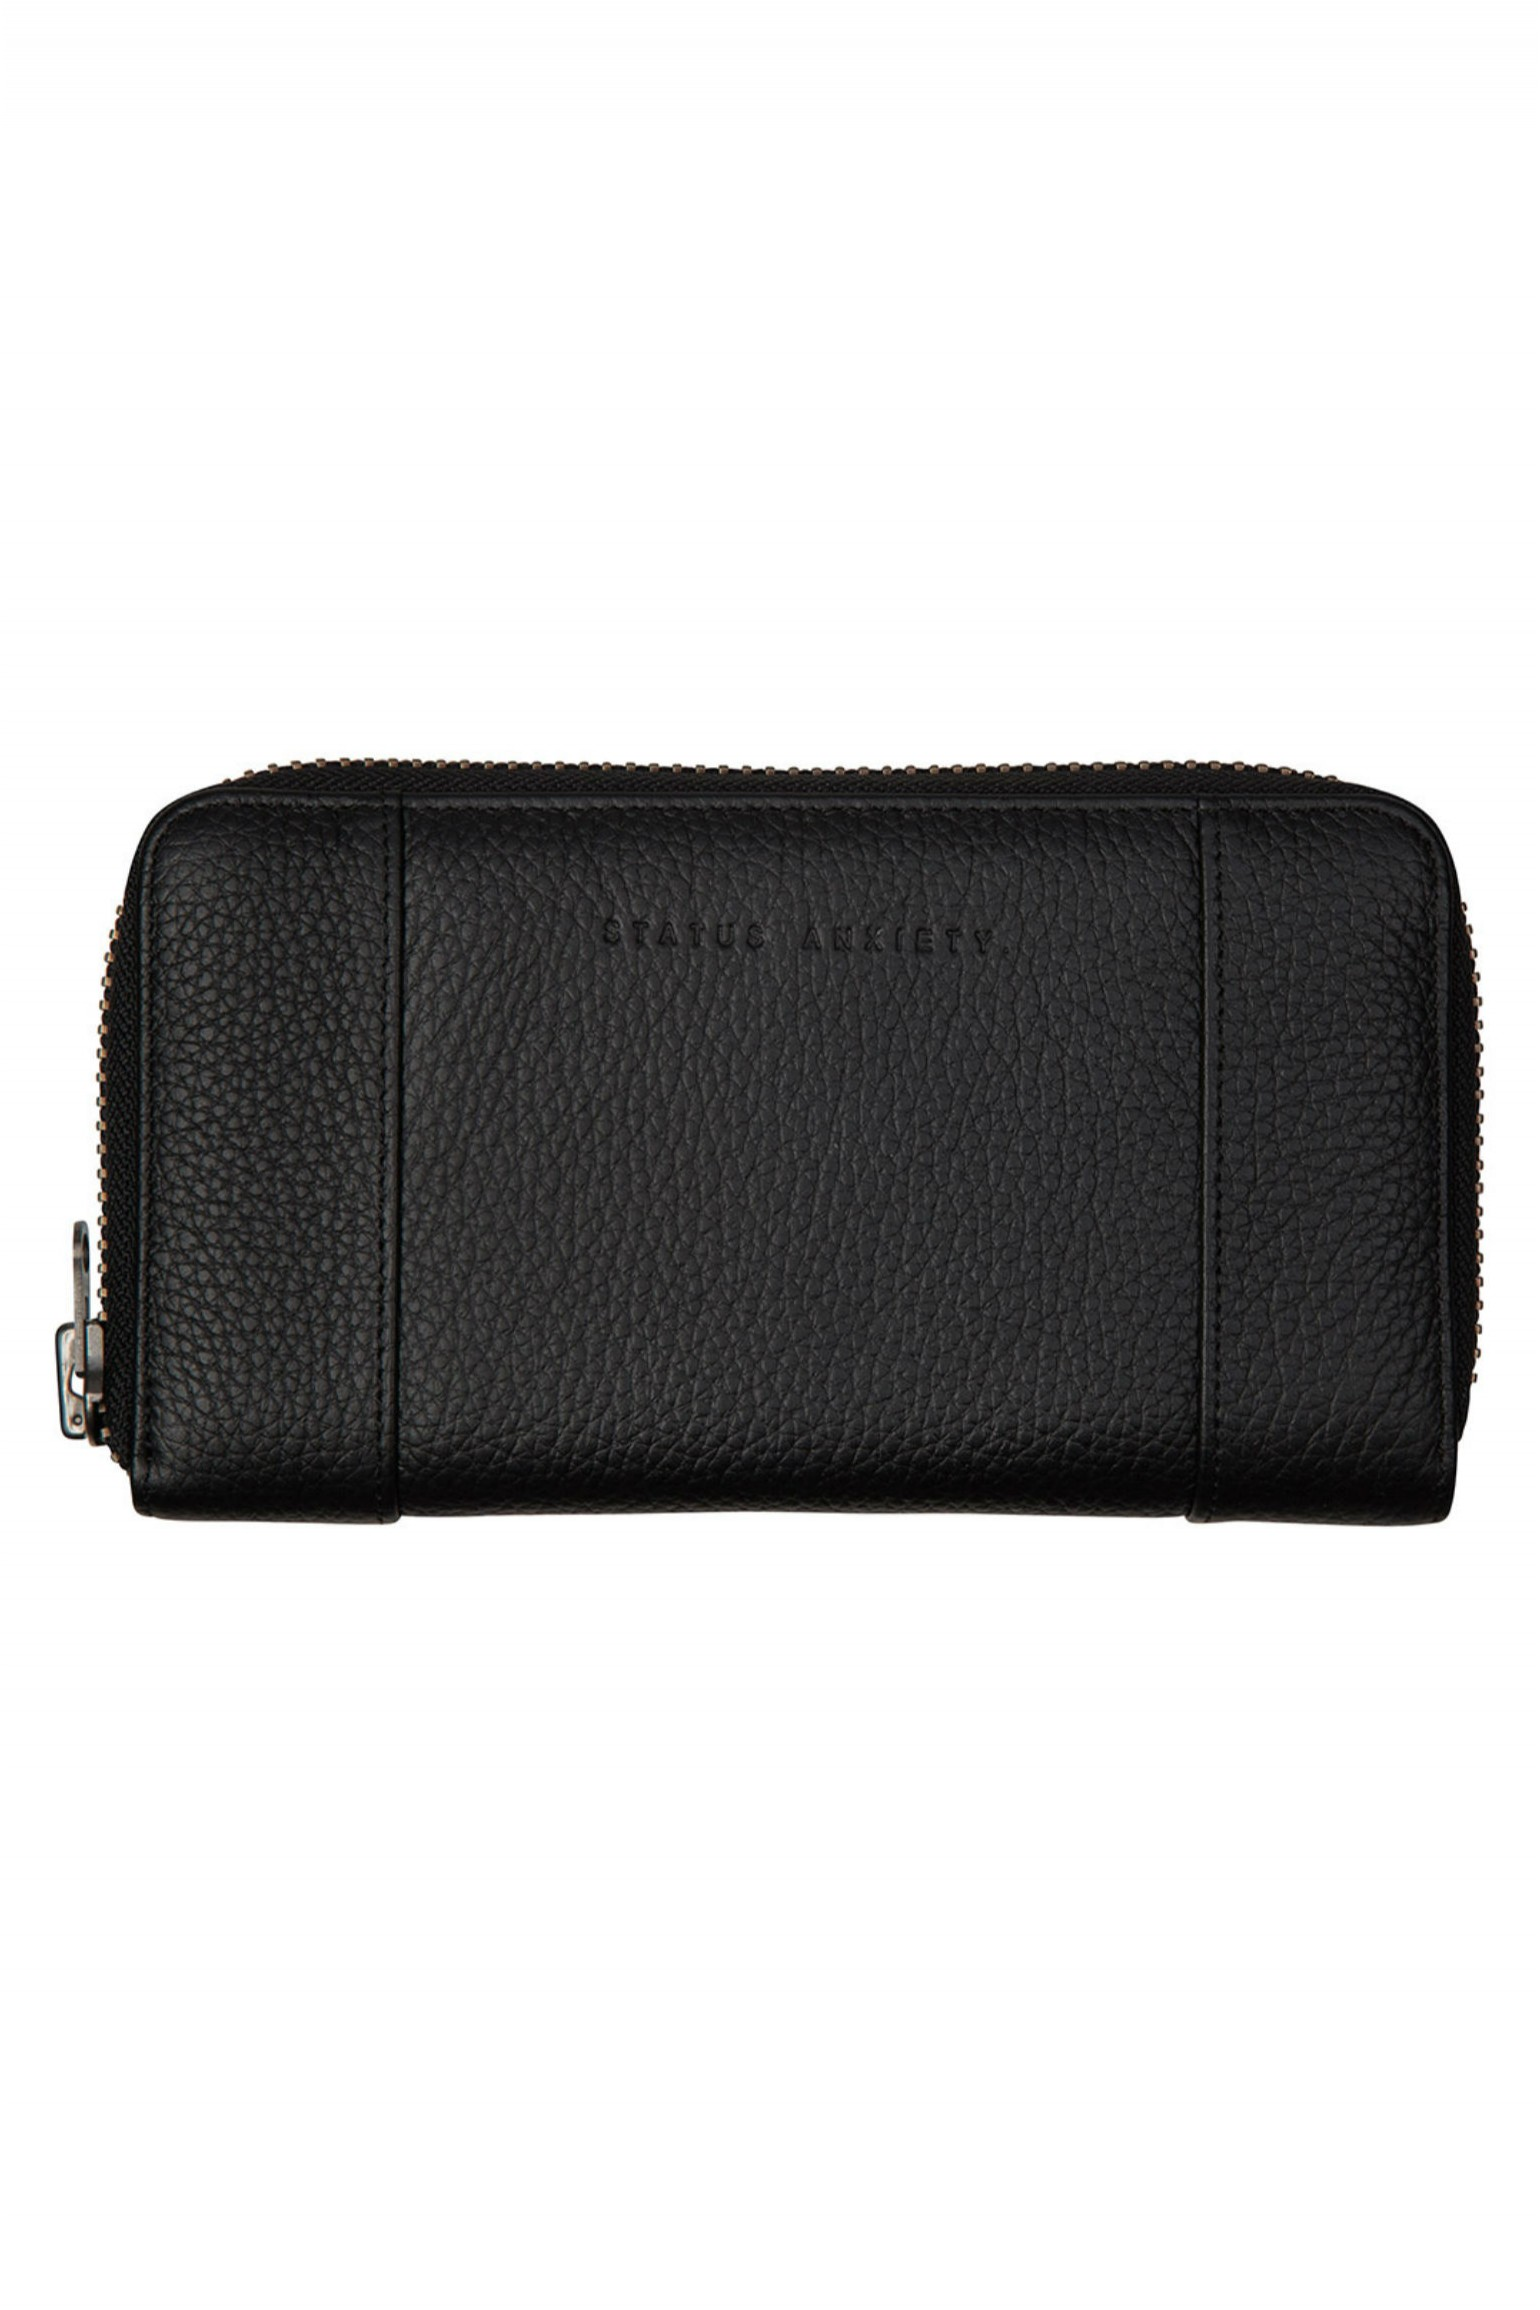 Status Anxiety State of Flux Wallet Black